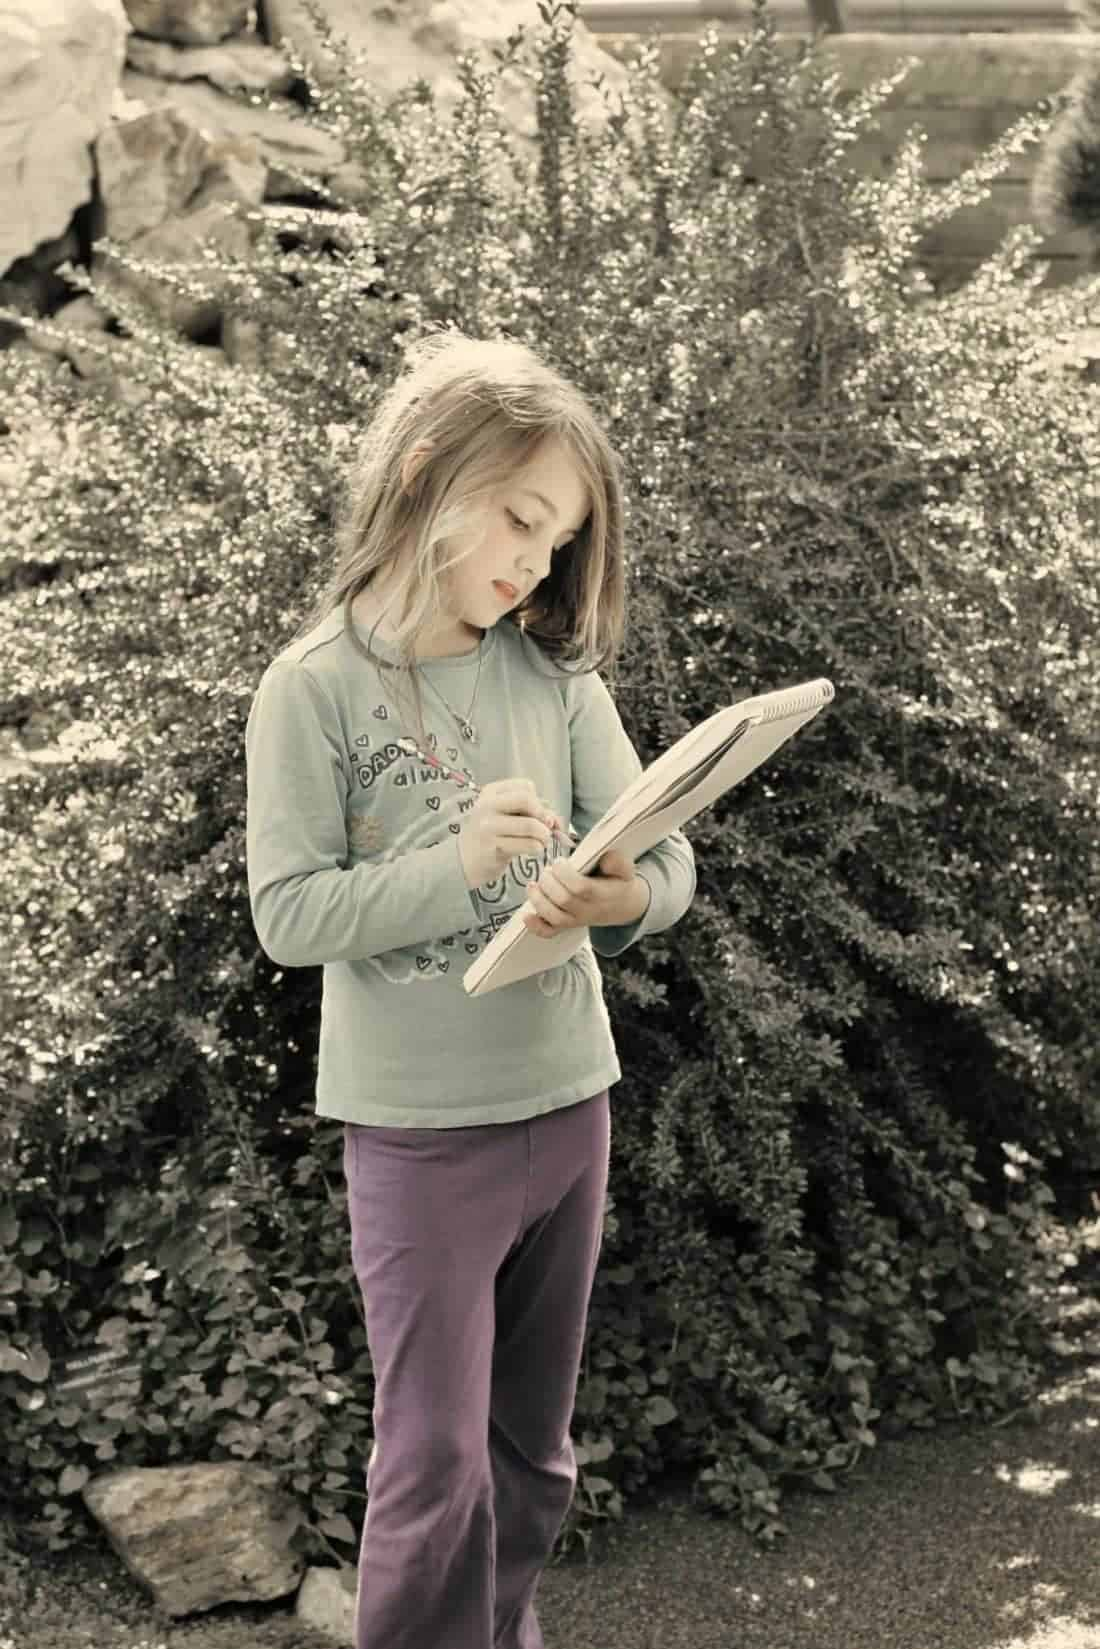 little girl standing, holding her sketchpad and pencil in the garden